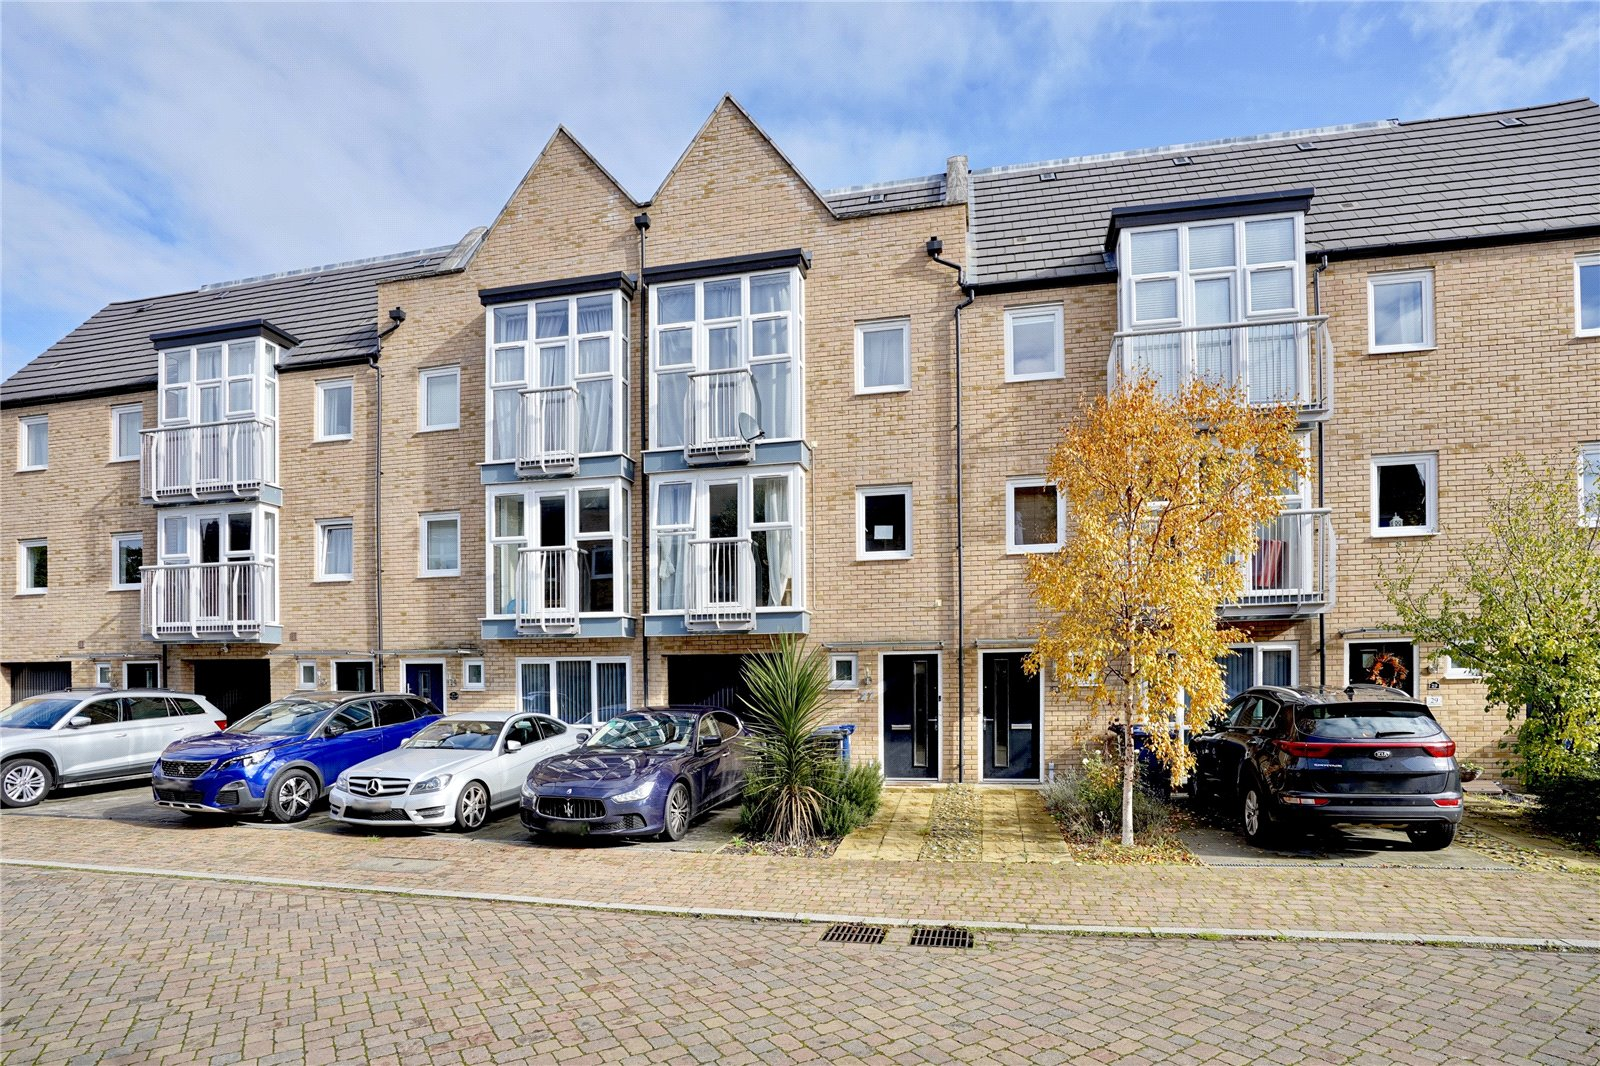 4 bed house for sale in Little Paxton, Holly Blue Close, PE19 6TD, PE19